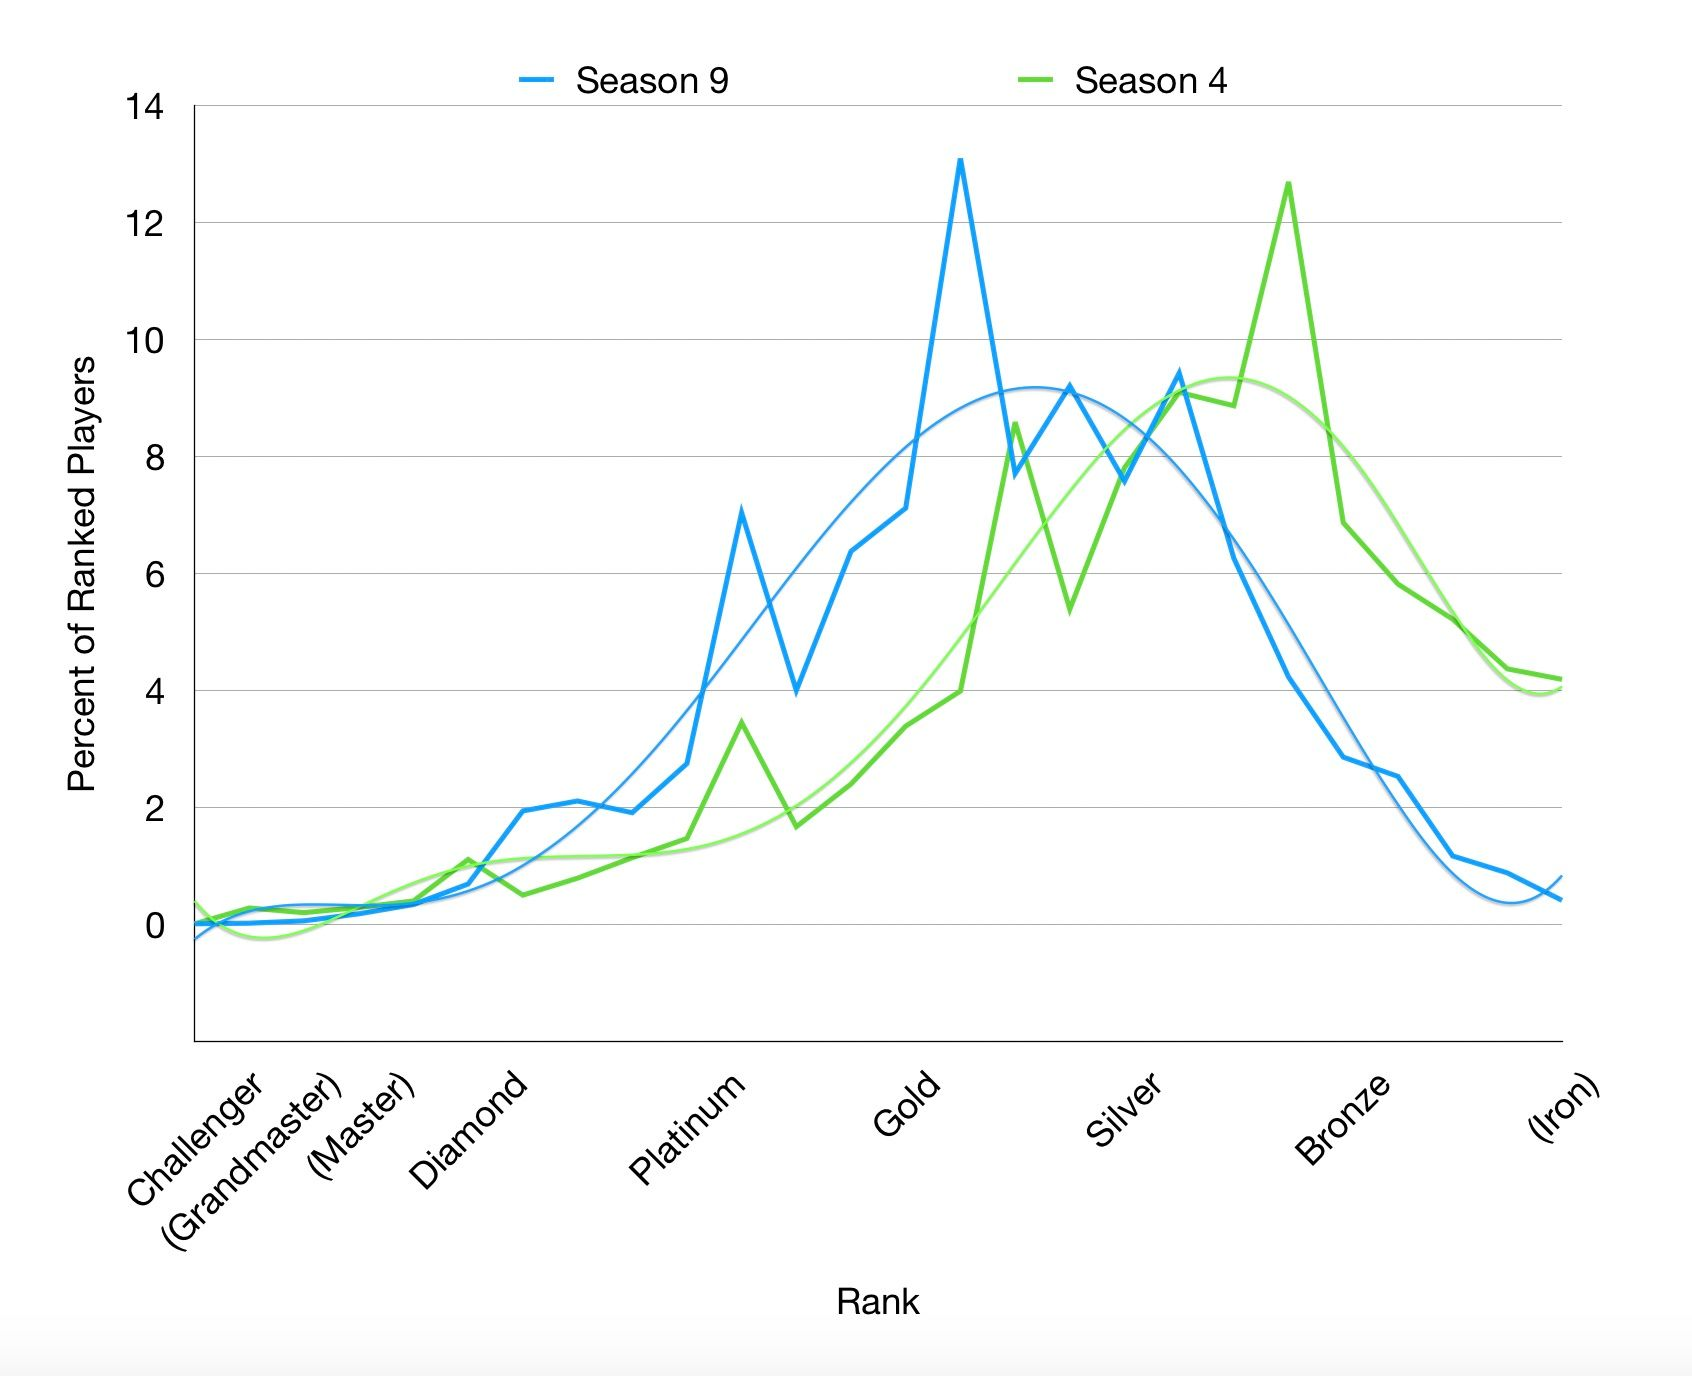 League of Legends ranked distribution in season 9 compared to season 4